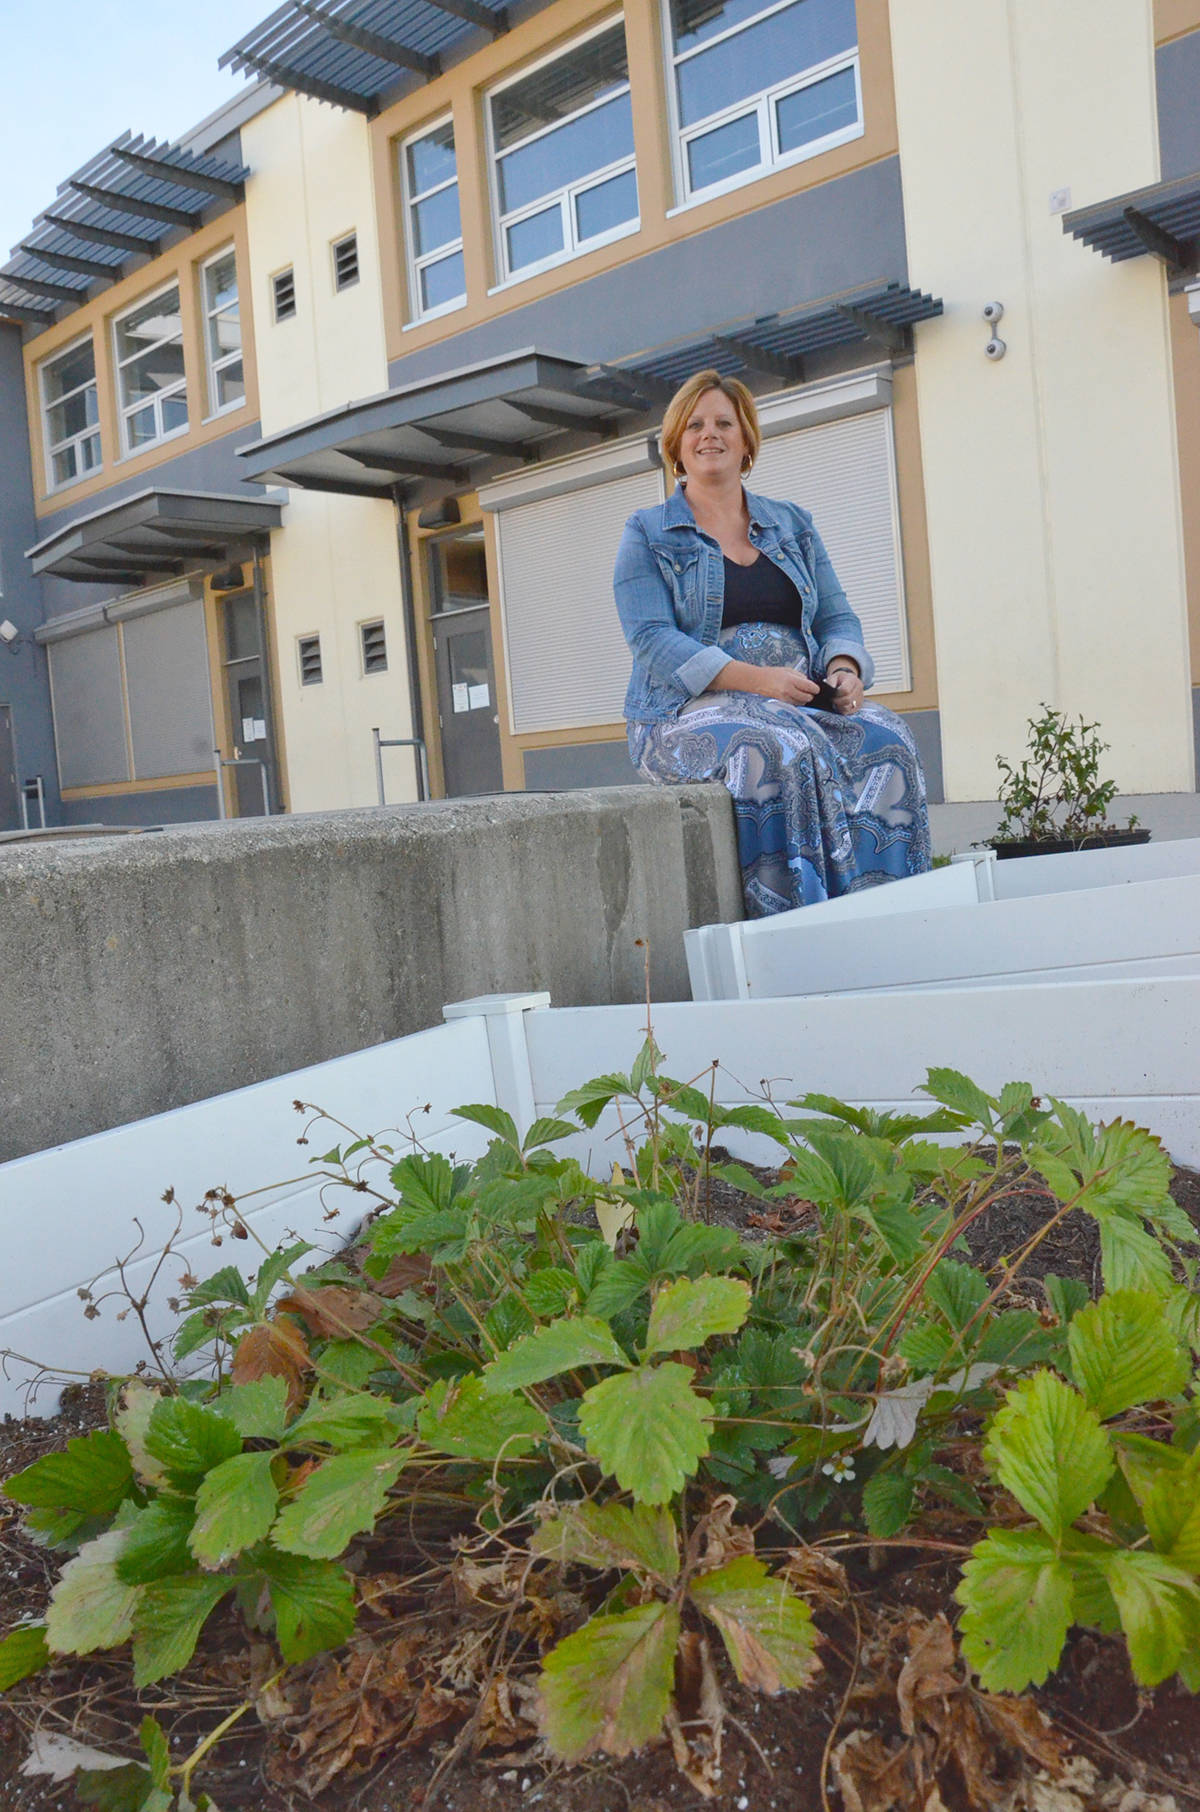 Lynn Fripps Elementary has student gardens. Principal Kim Anderson said the kids will still get to get their hands dirty in the outdoor areas when they return to class. (Heather Colpitts/Langley Advance Times)